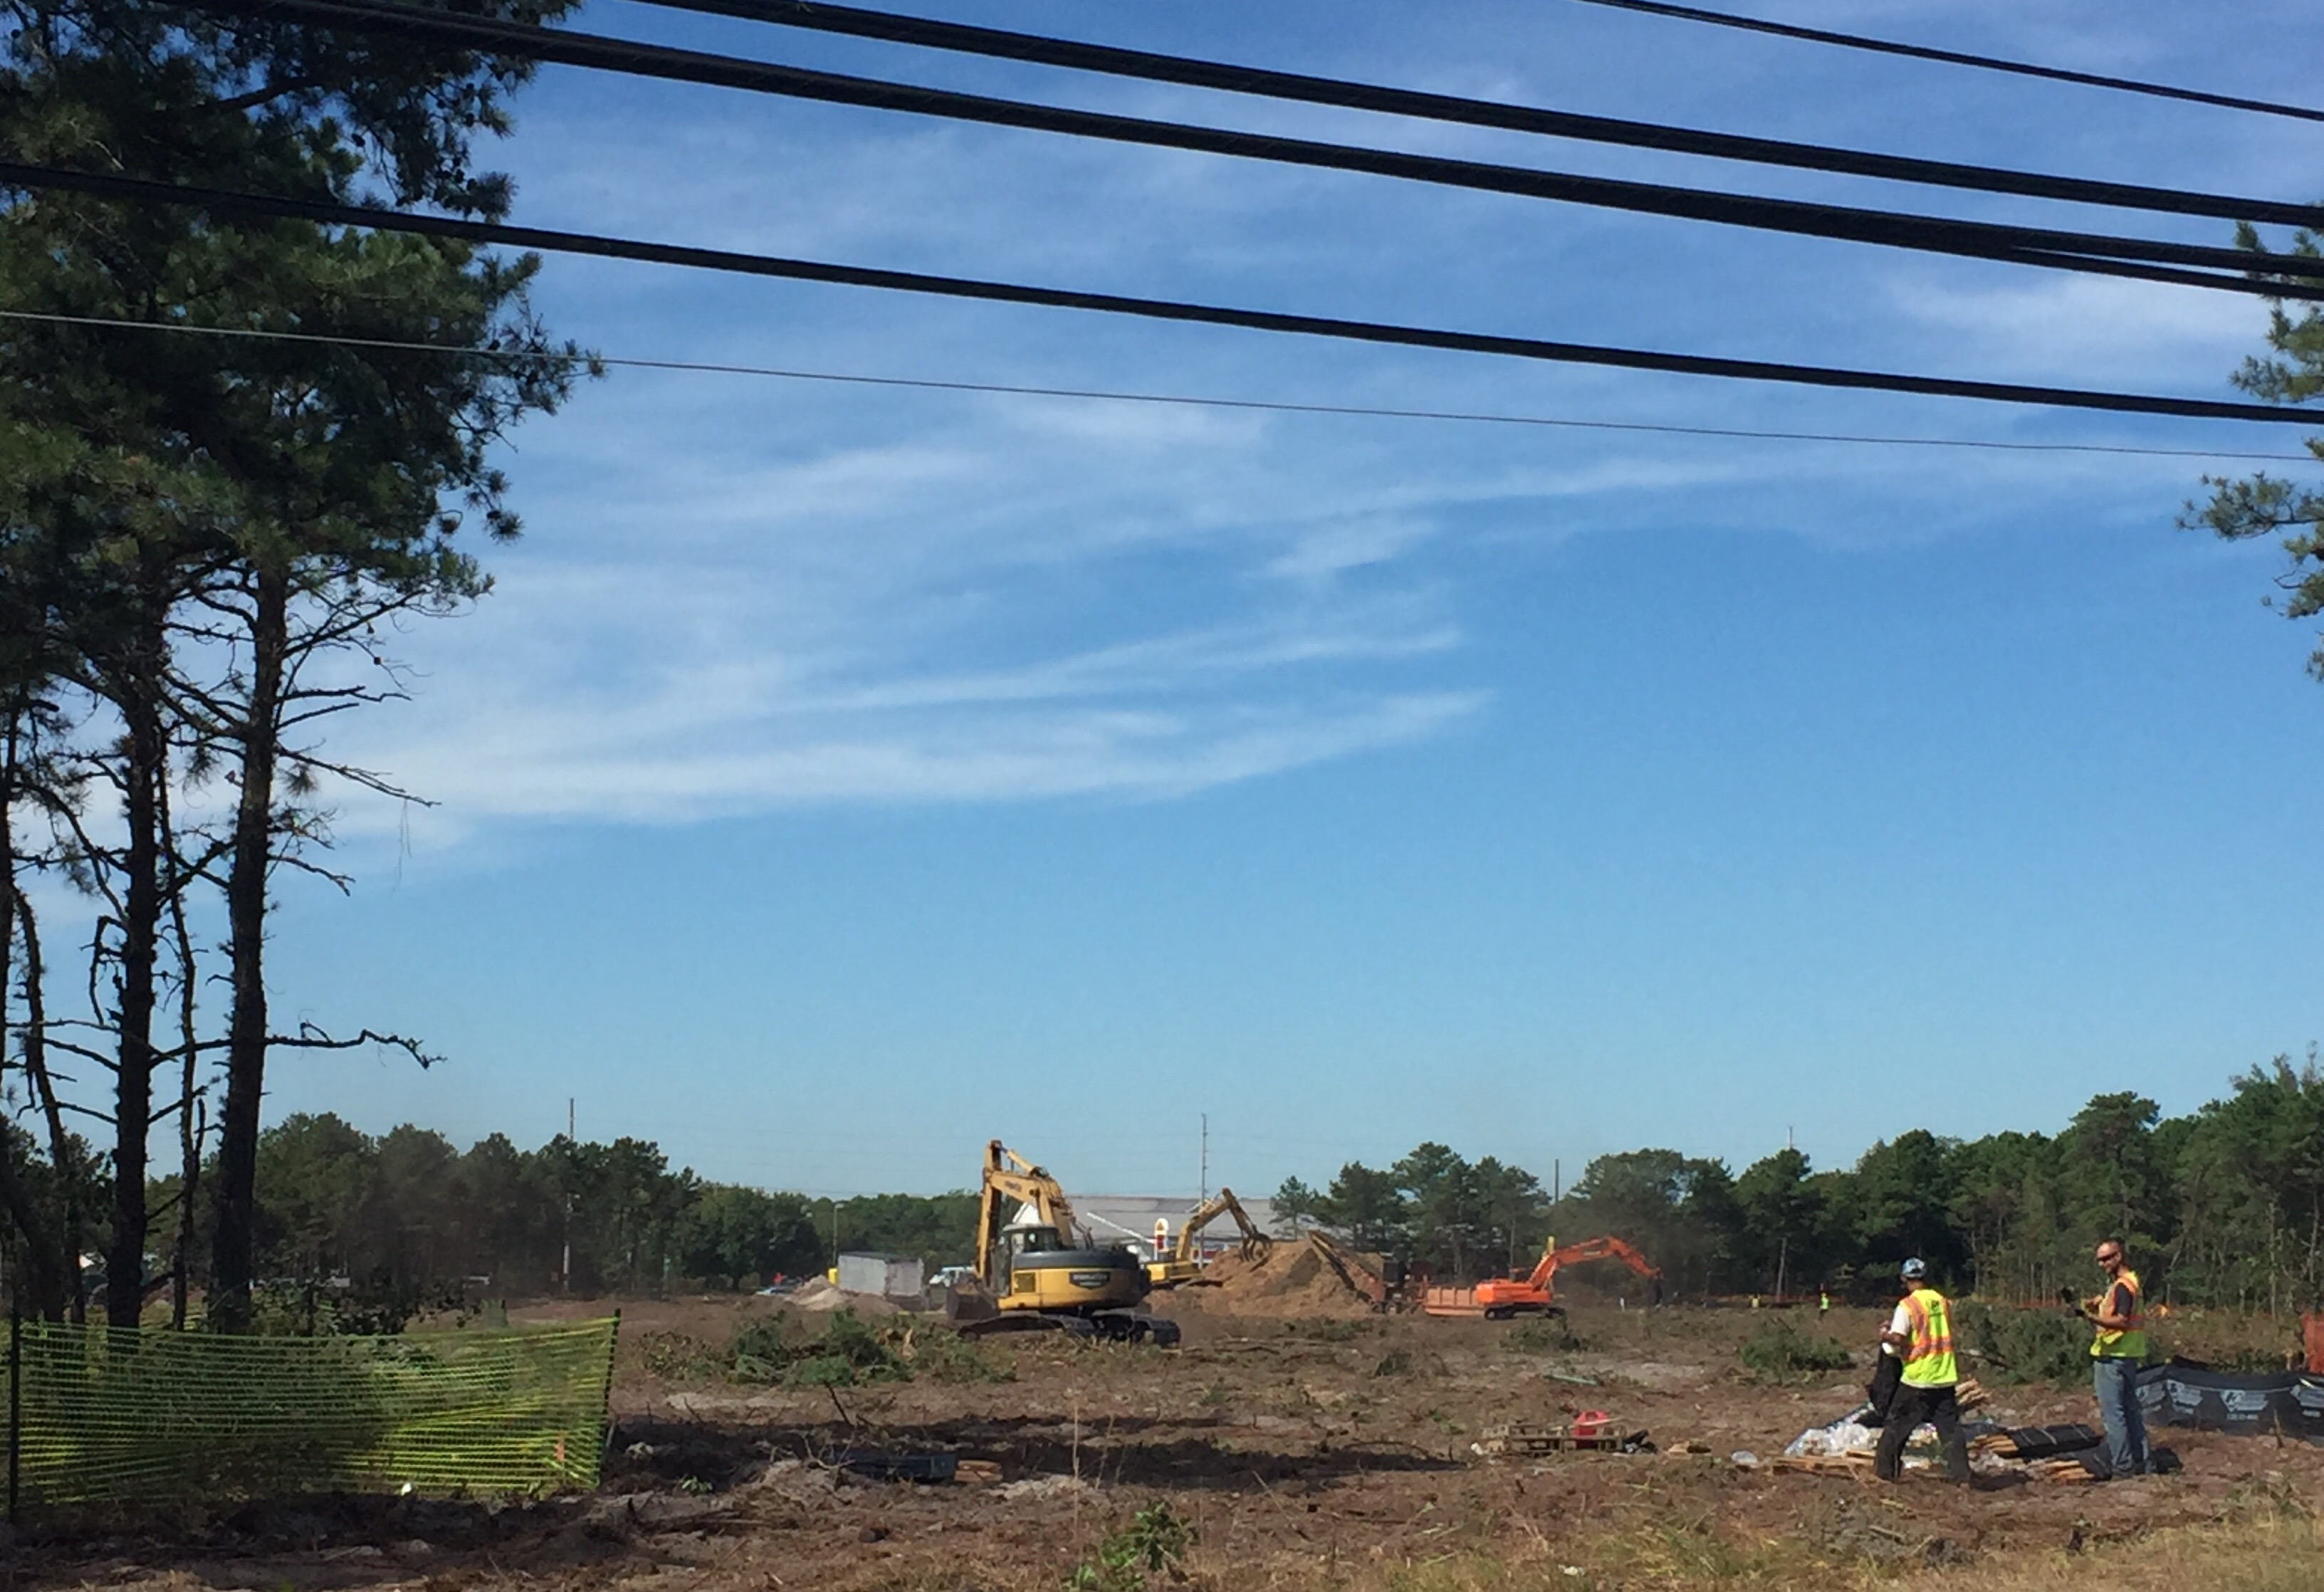 Clearing treed from the future site of 'The Boulevard at Brick' apartment complex. (Photo: Daniel Nee)